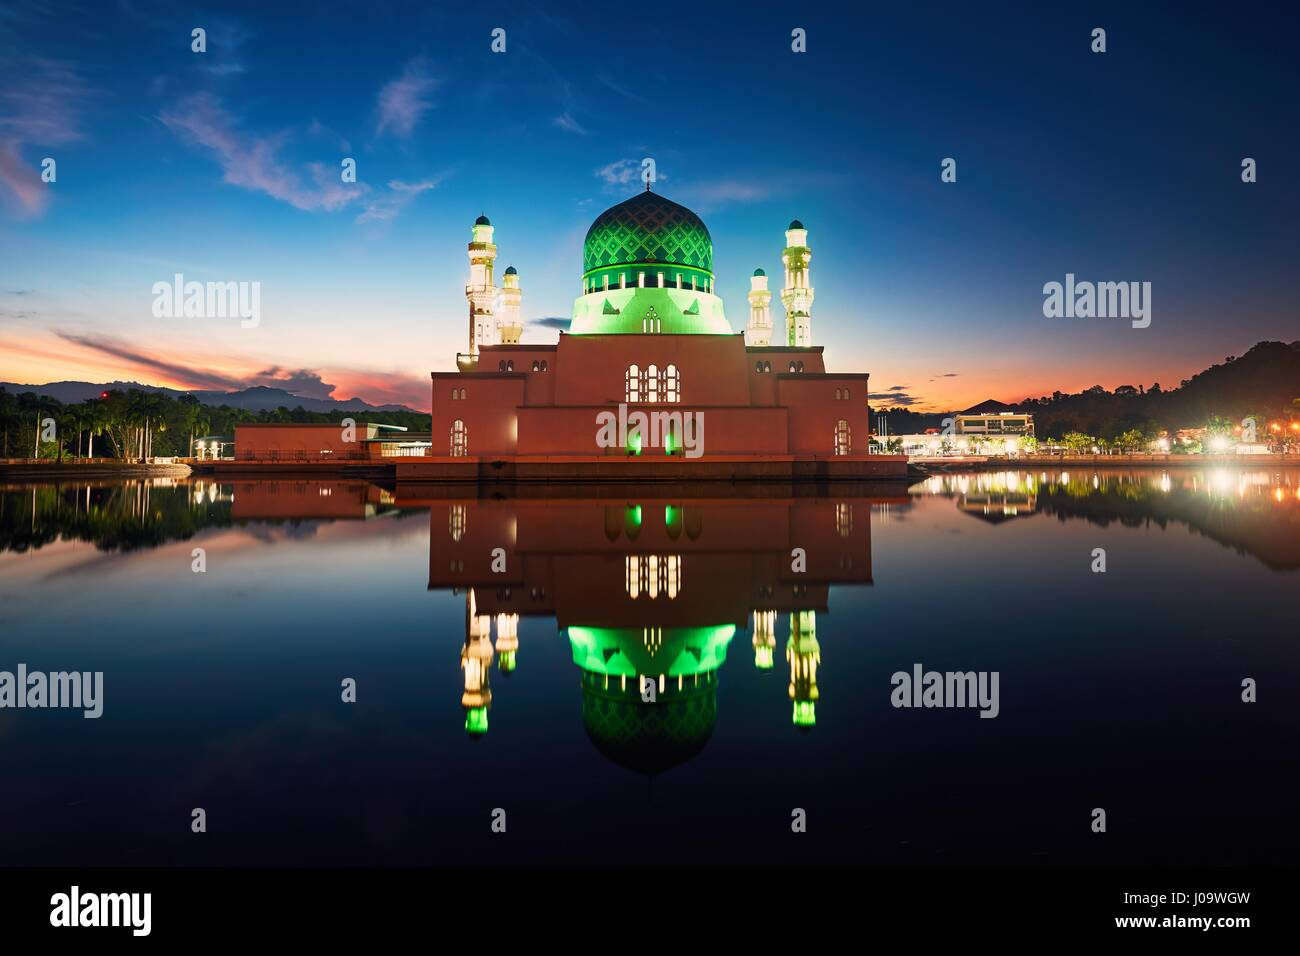 Reflection of Kota Kinabalu City Mosque, Island of Borneo, Malaysia Stock Photo